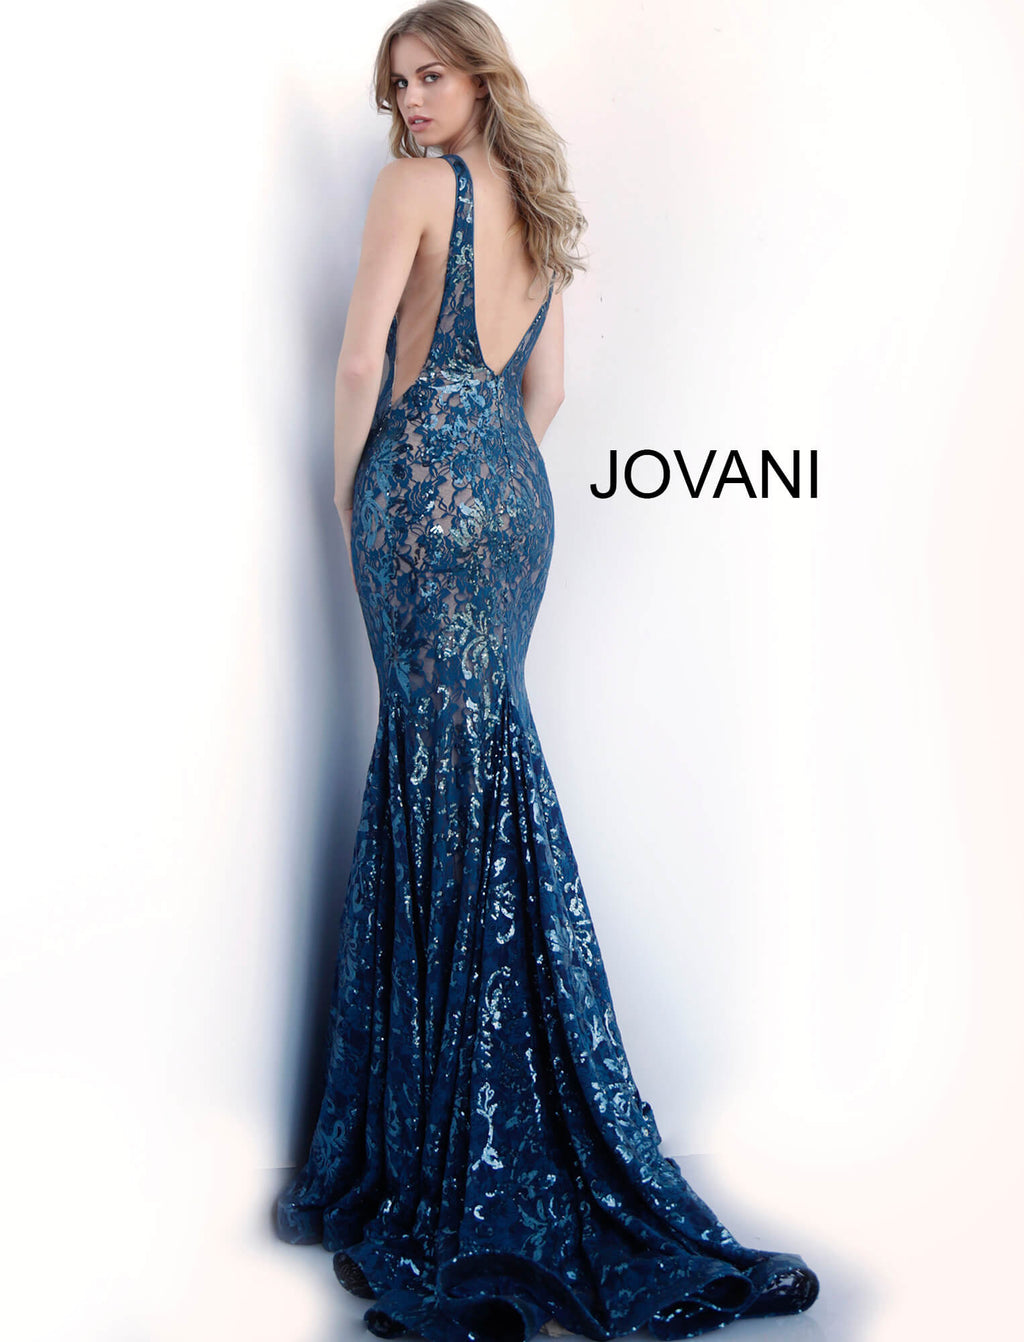 JOVANI 63437 Low V-Neck Embellished Evening Dress - CYC Boutique